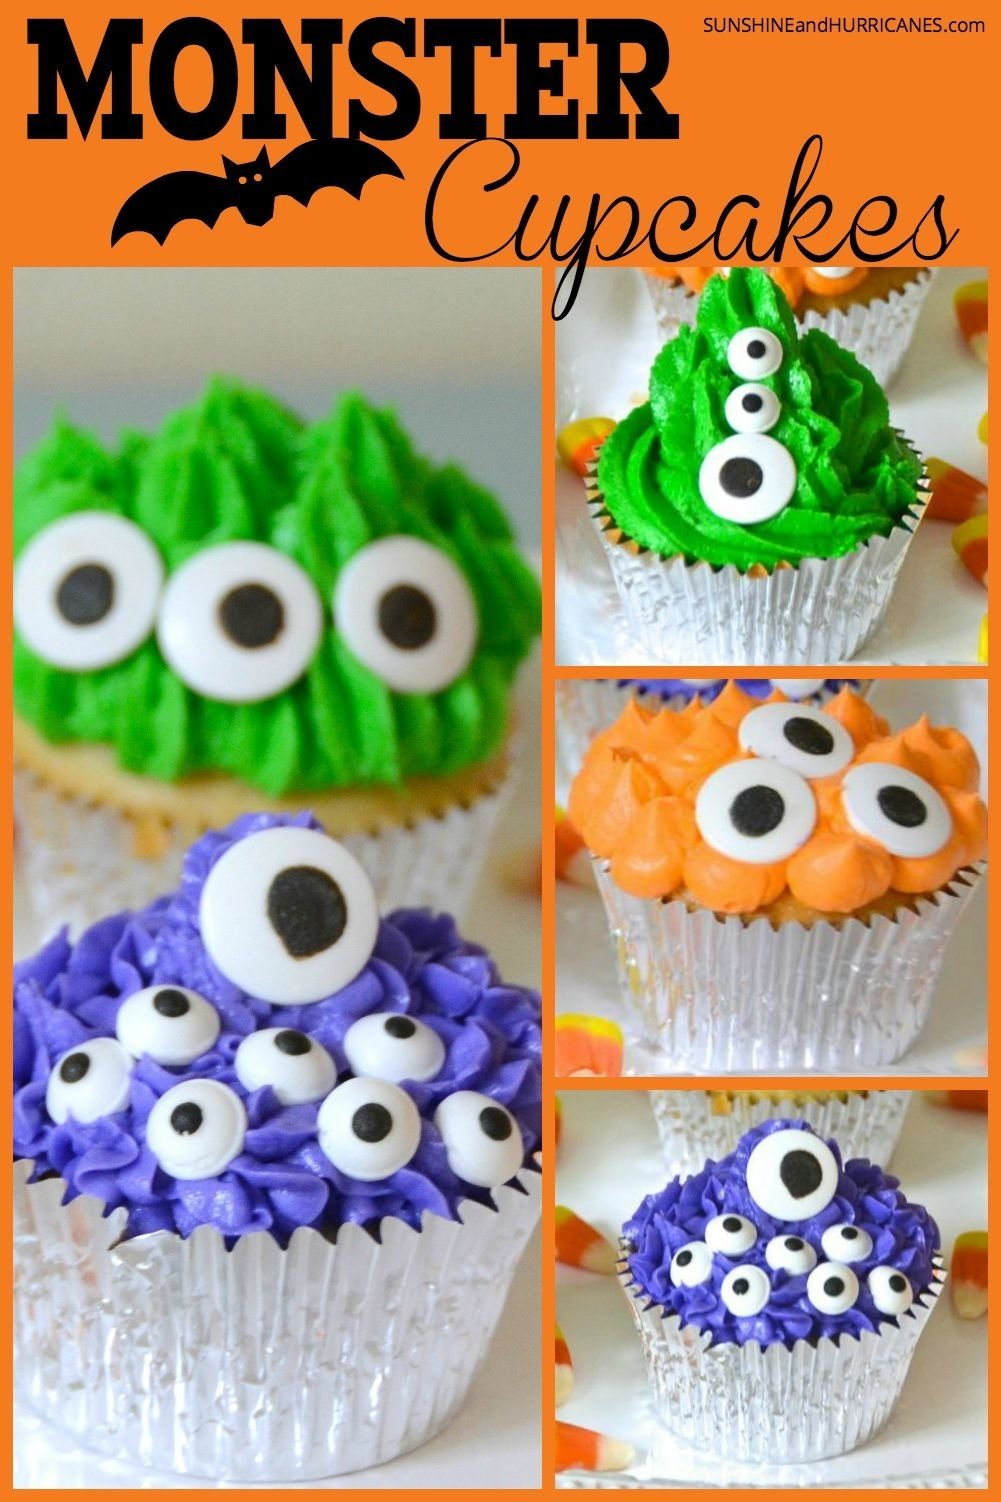 10 Elegant Halloween Cake Ideas For Kids monster halloween cupcakes 1 2020